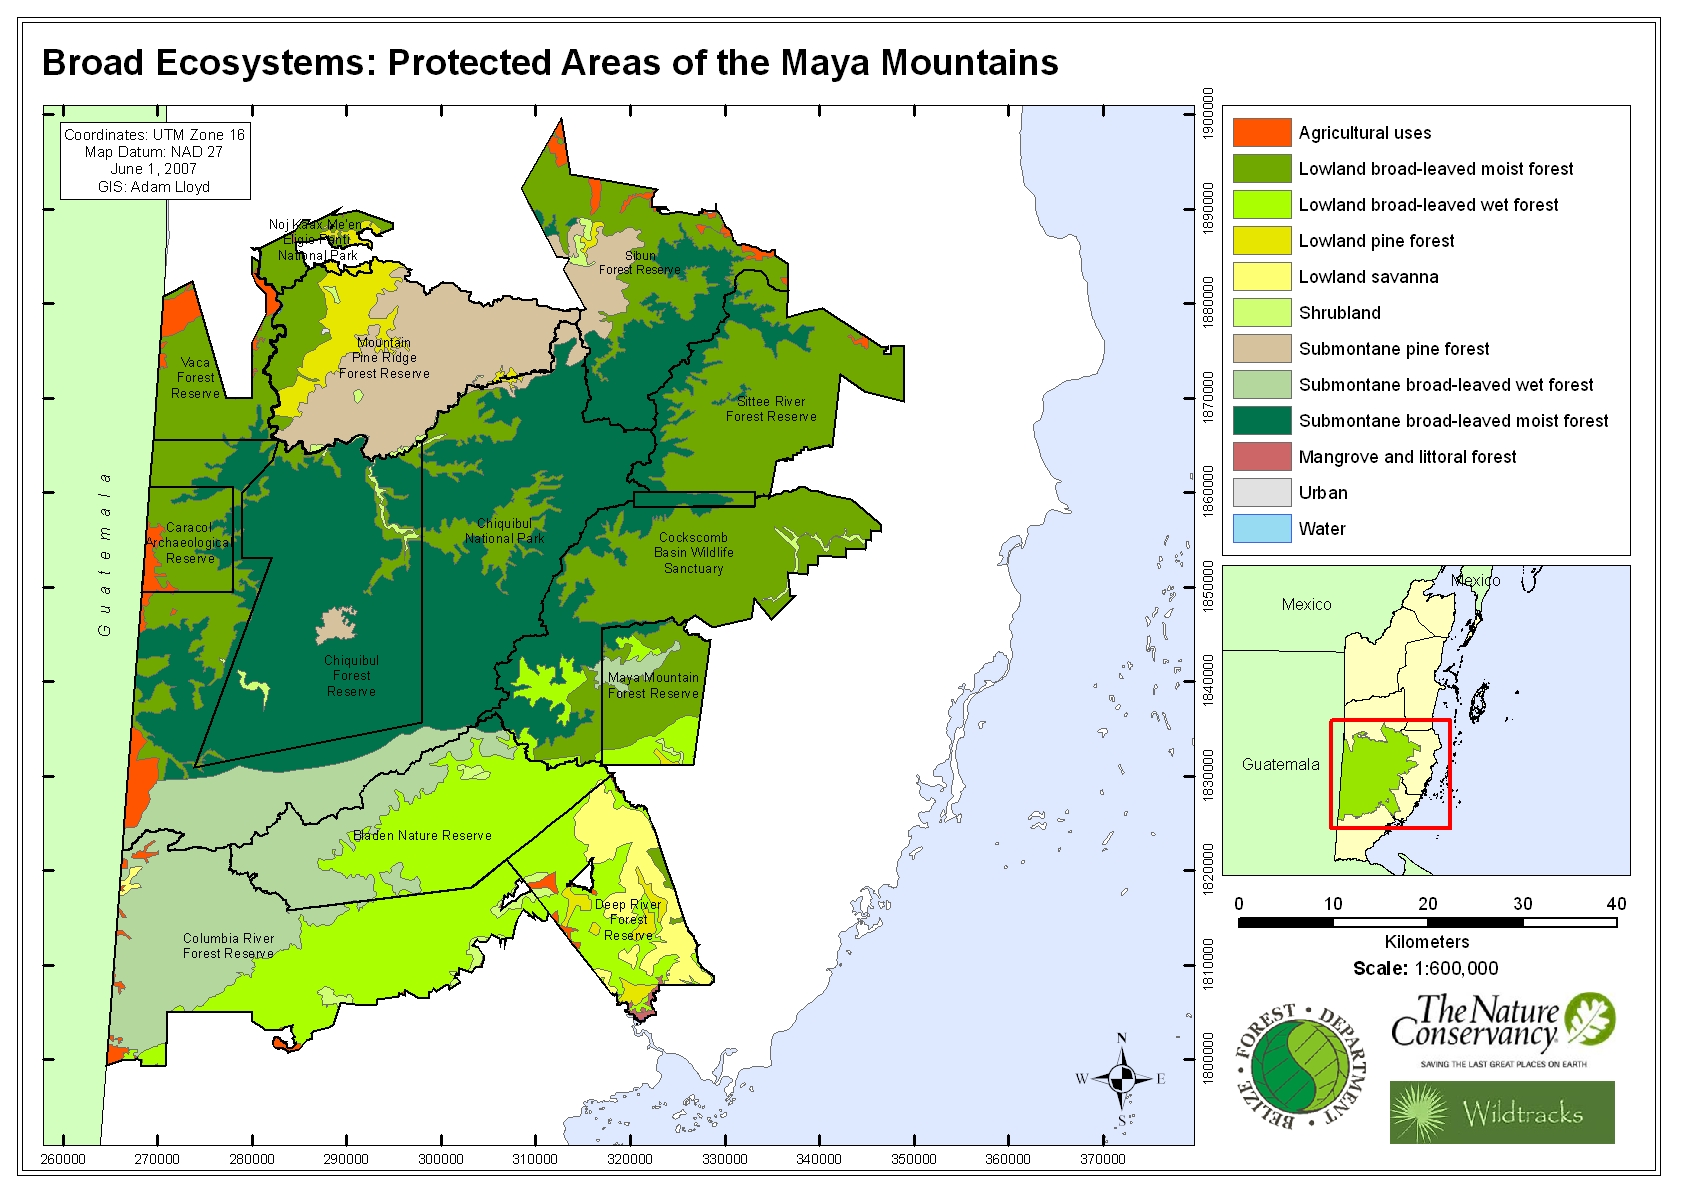 Broad Ecosystems: Protected Areas of the Maya Mountains